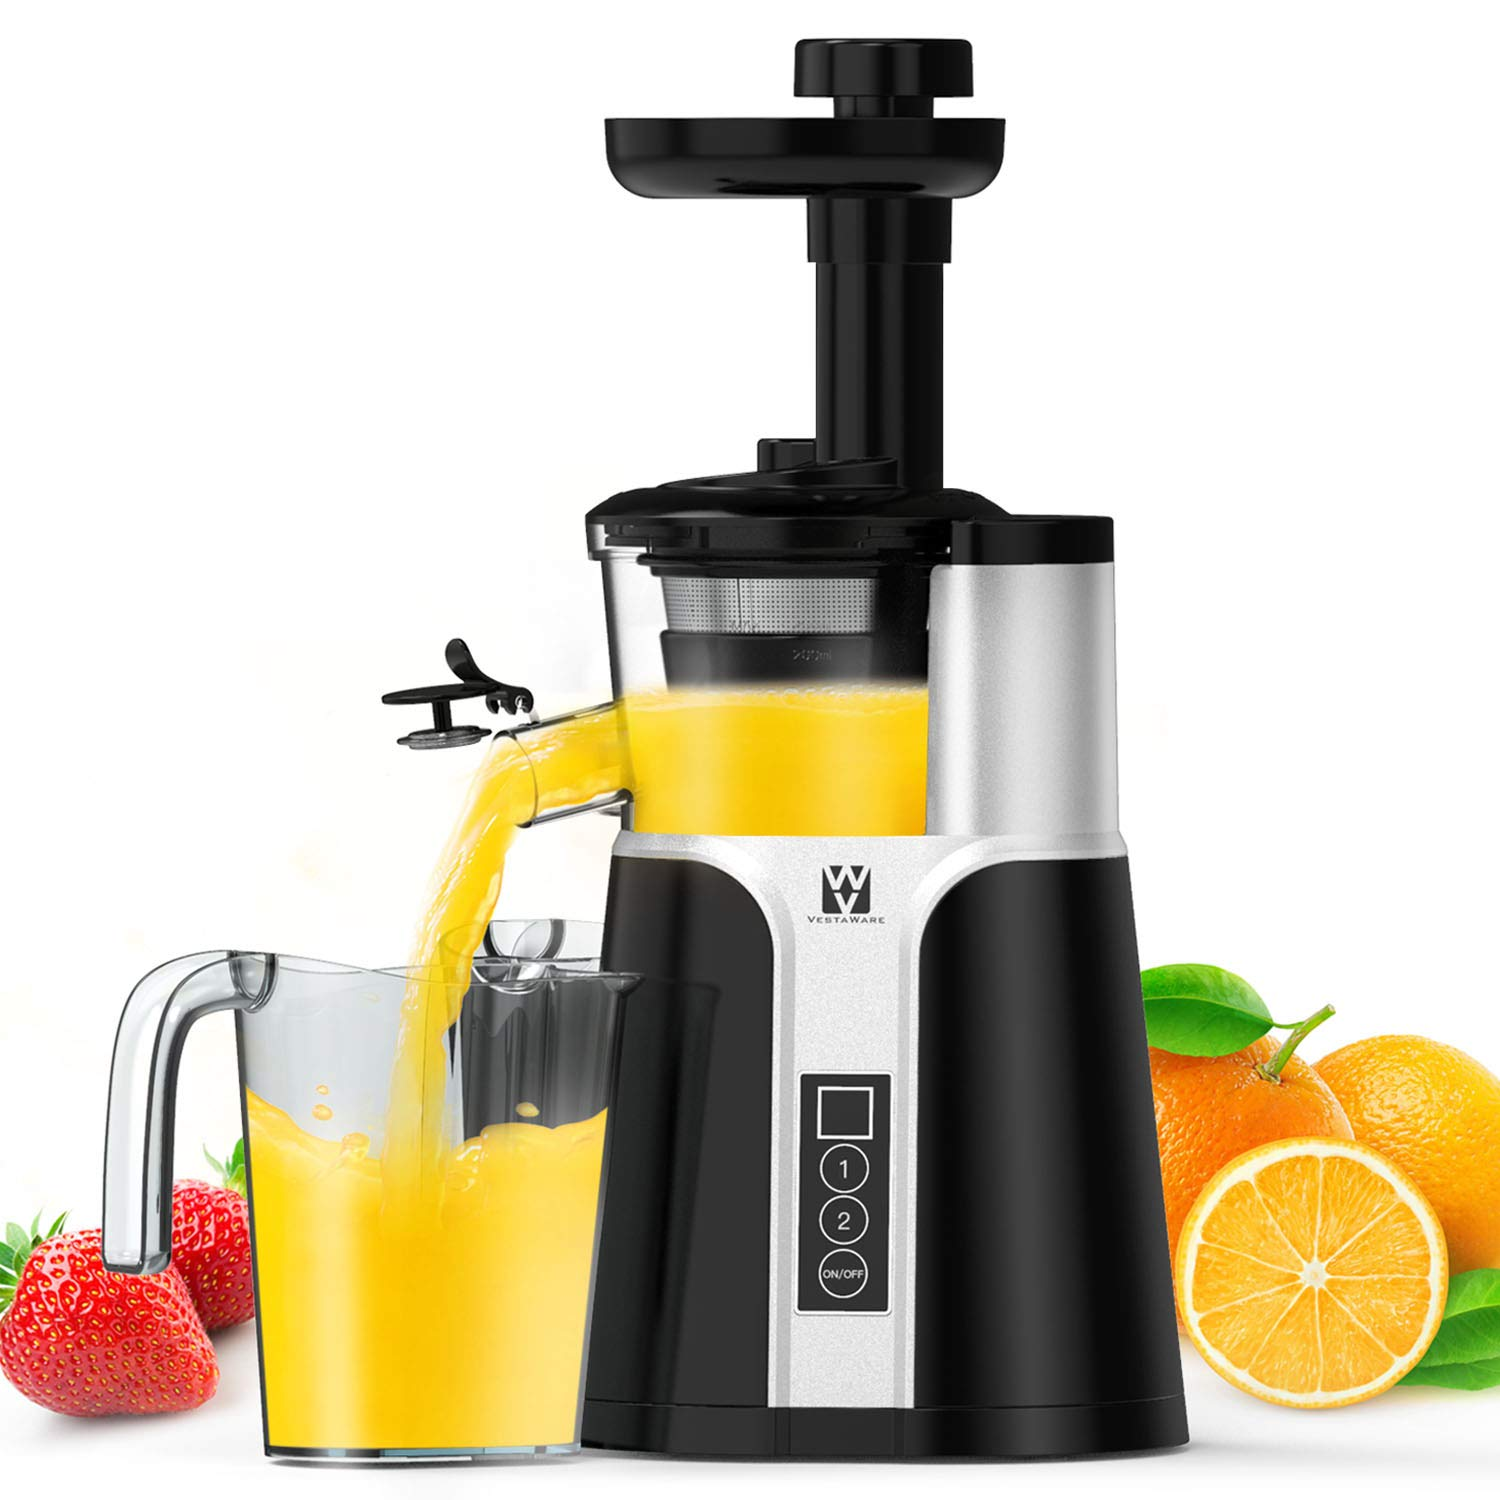 Juicer Machines, Vestaware Slow Masticating Juicer Extractor, Easy to Clean Juicer with Quiet Motor, BPA-Free Cold Press Juicer for Vegetables and Fruits by Vestaware